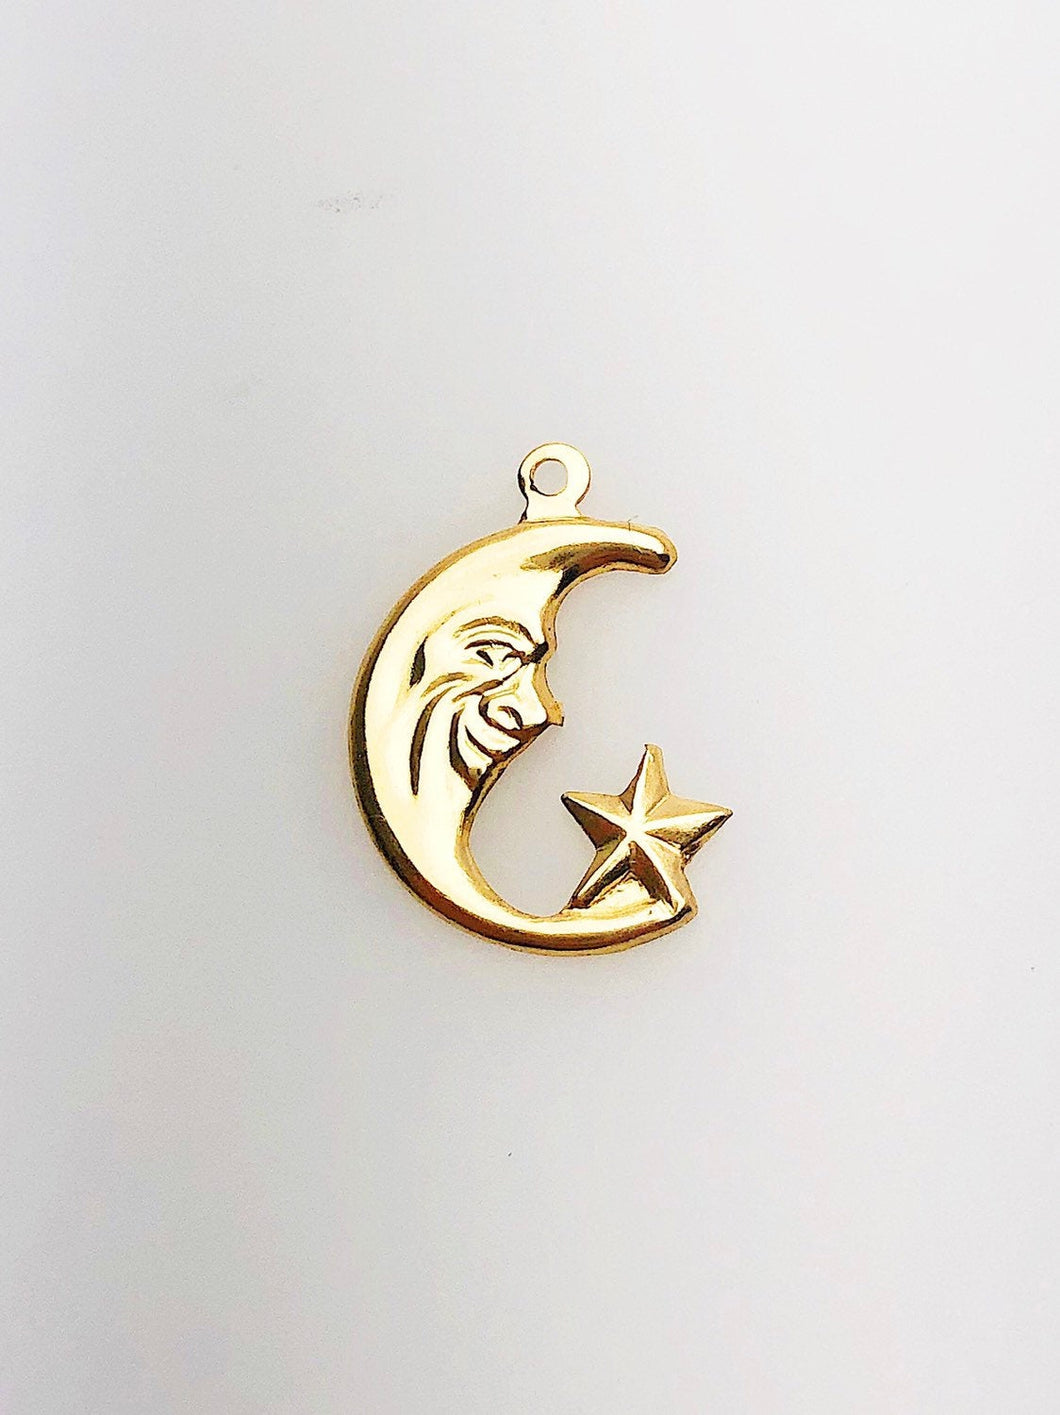 14K Gold Fill Moon & Star Charm w/ Ring, 11.0mm, Made in USA - 1840